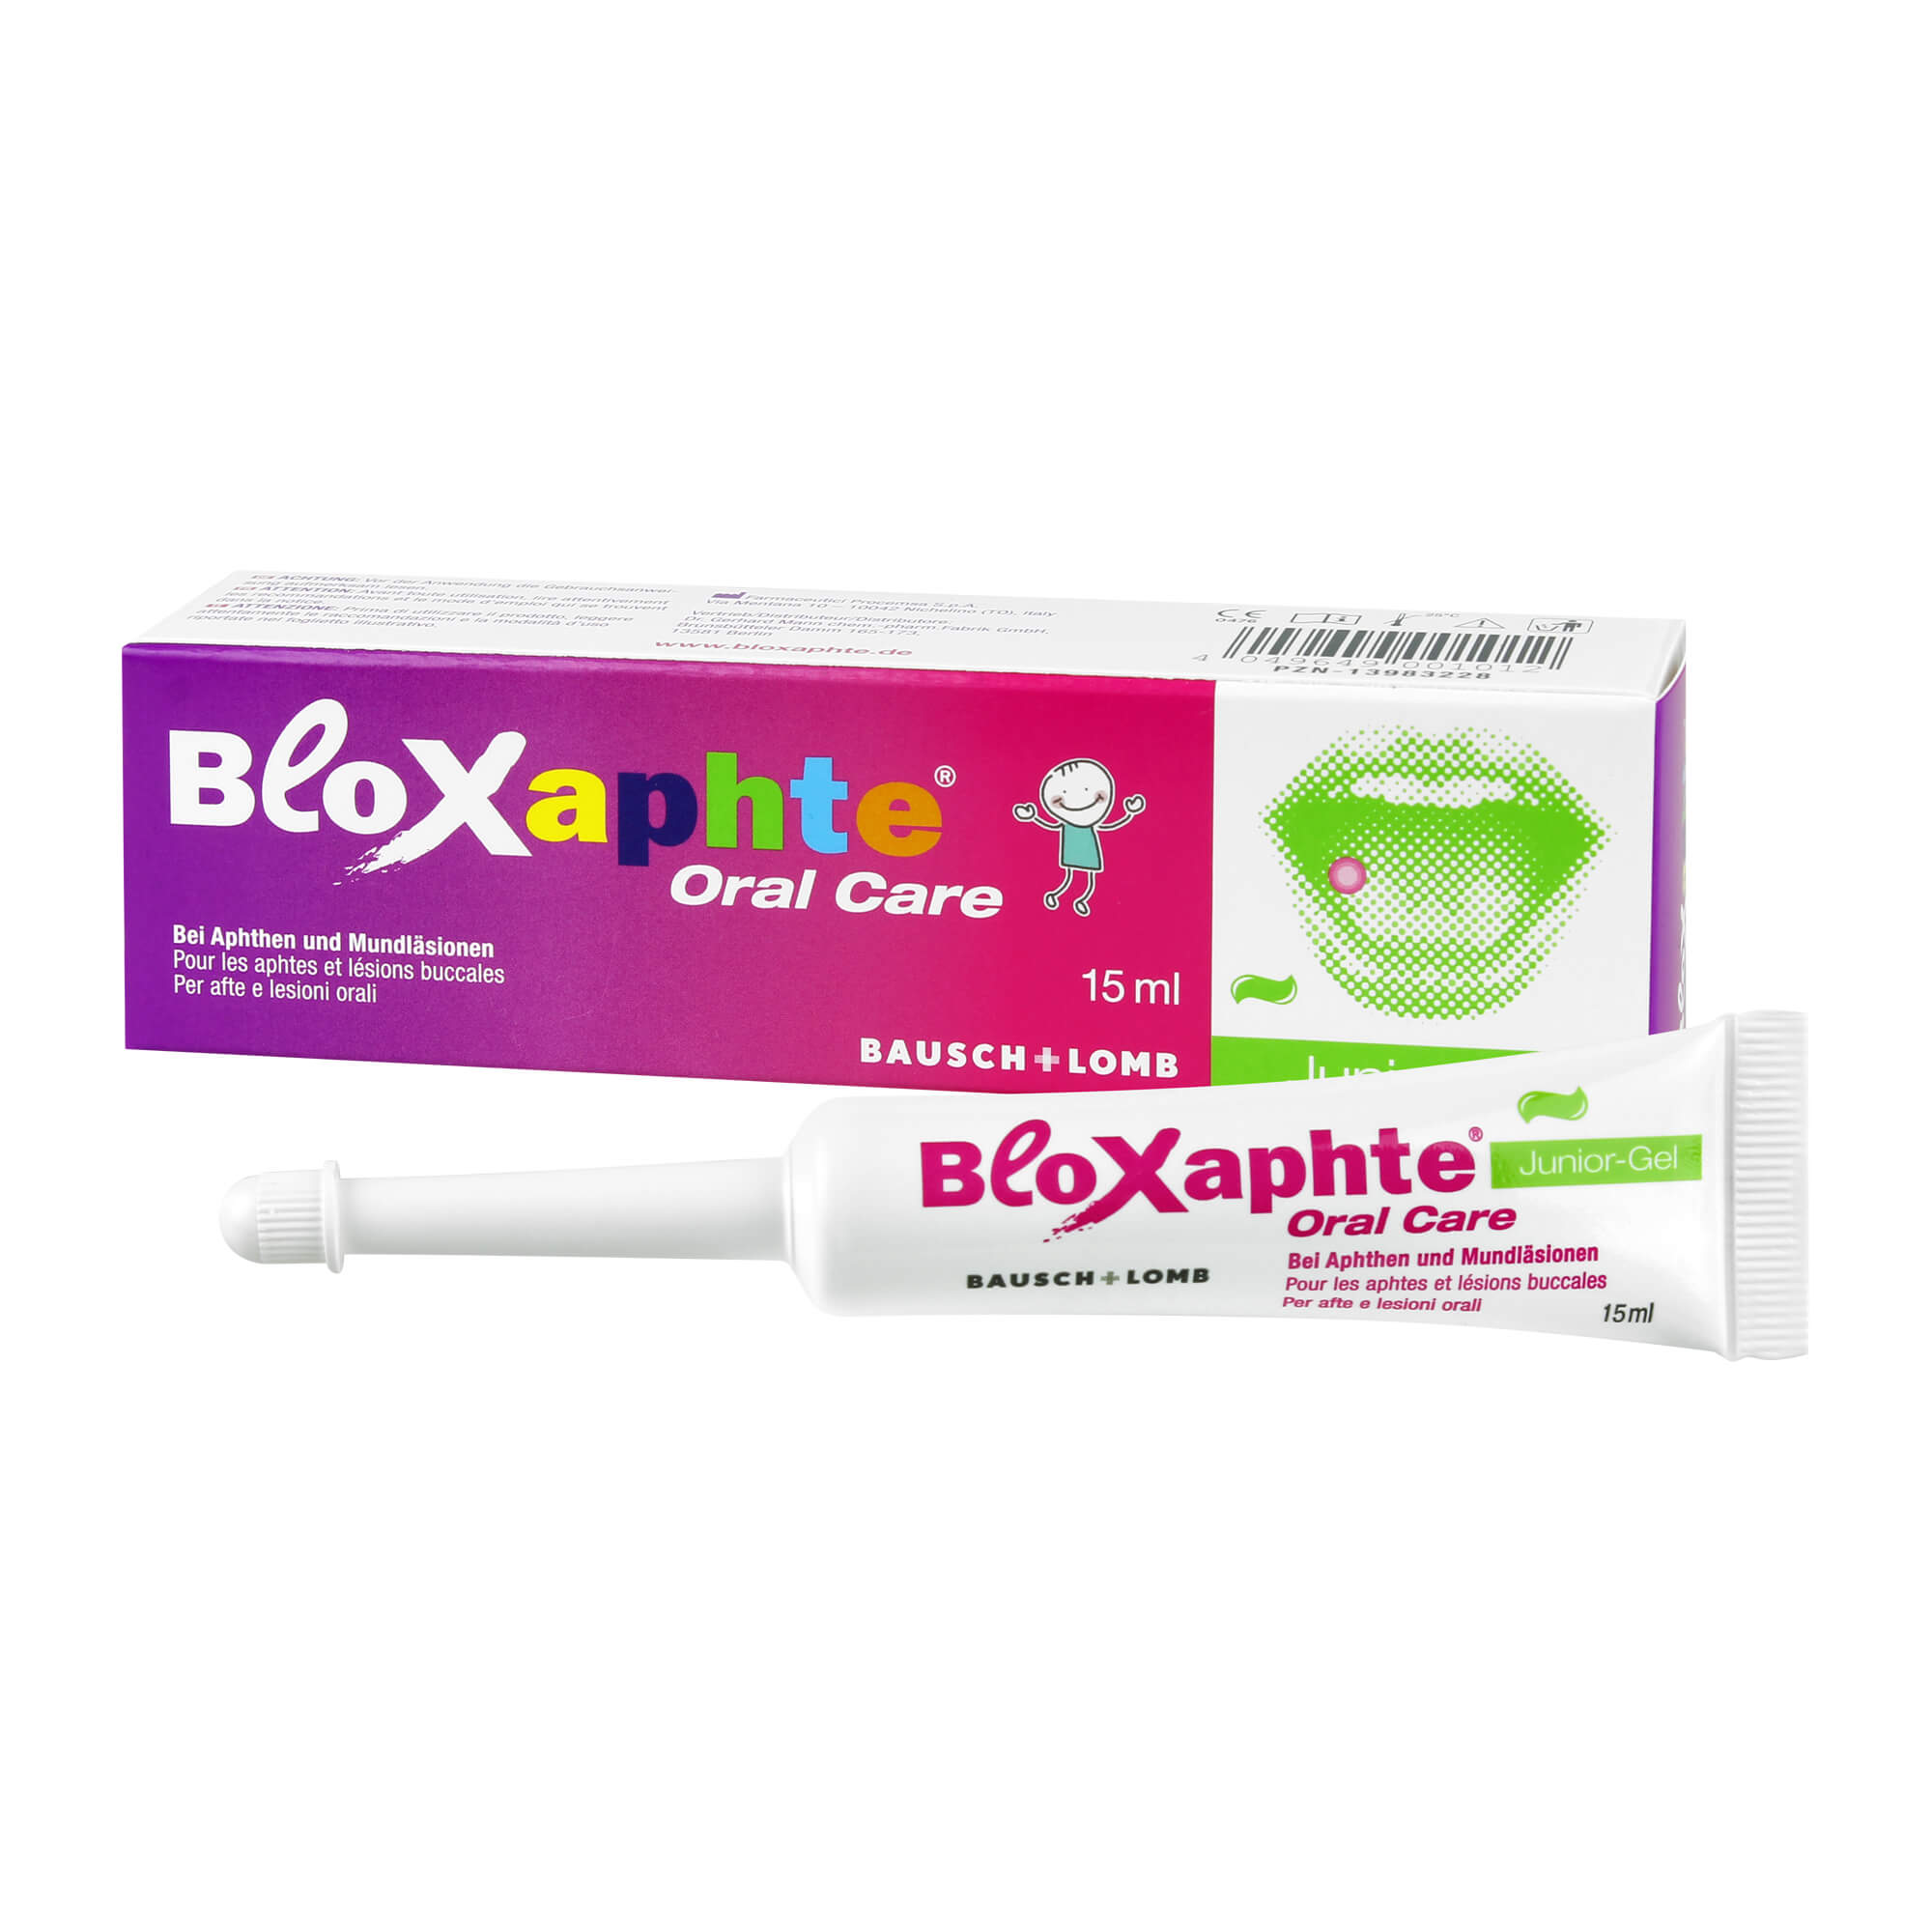 Bloxaphte Oral Care Junior Gel